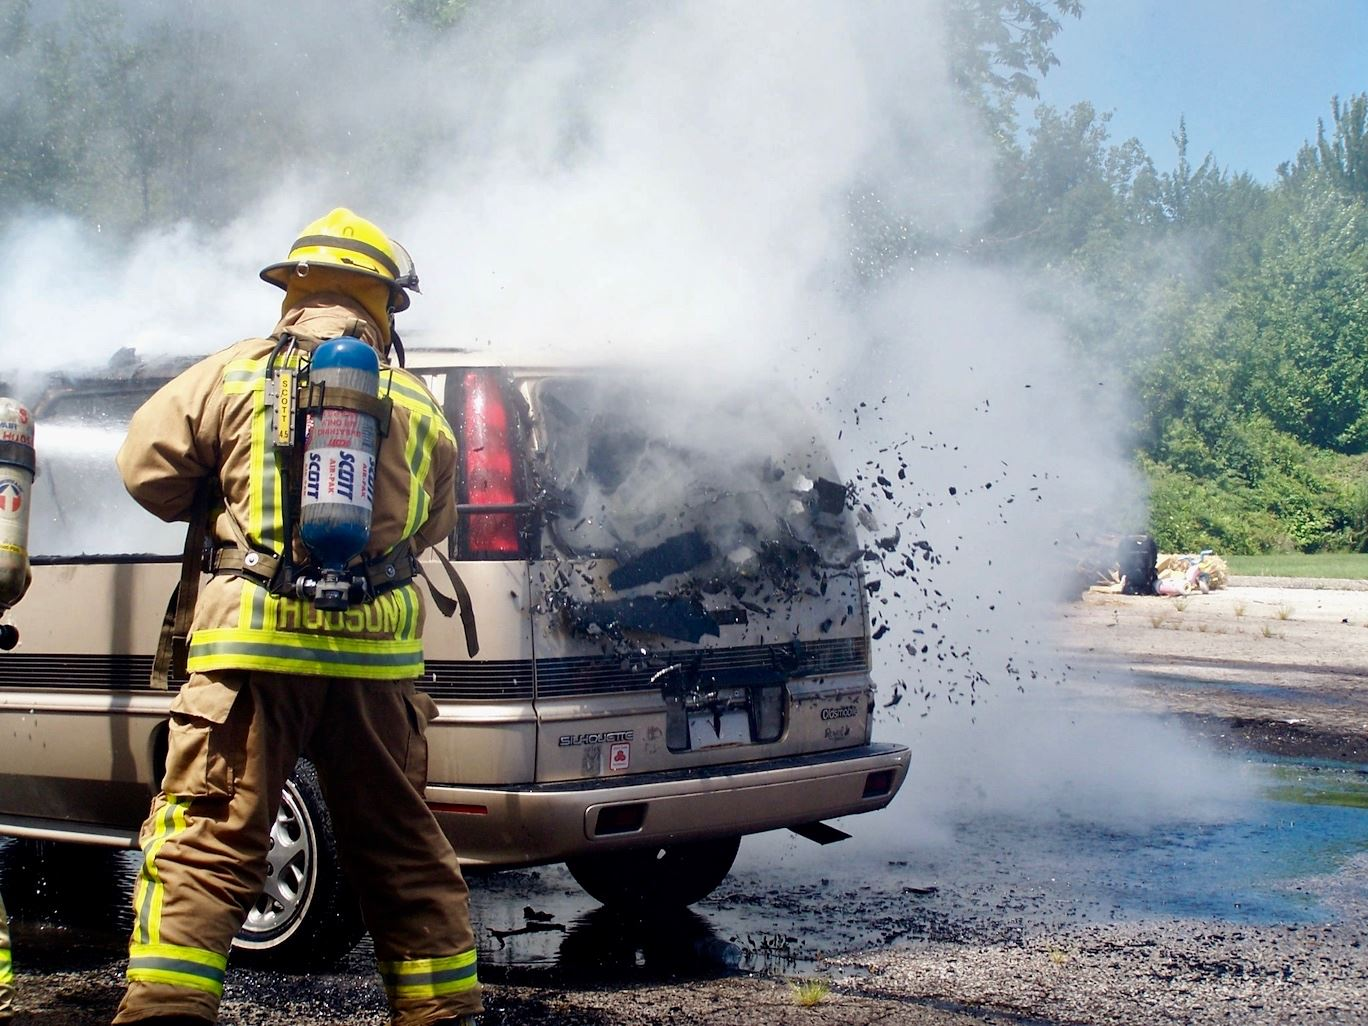 Firefighter at Car Fire